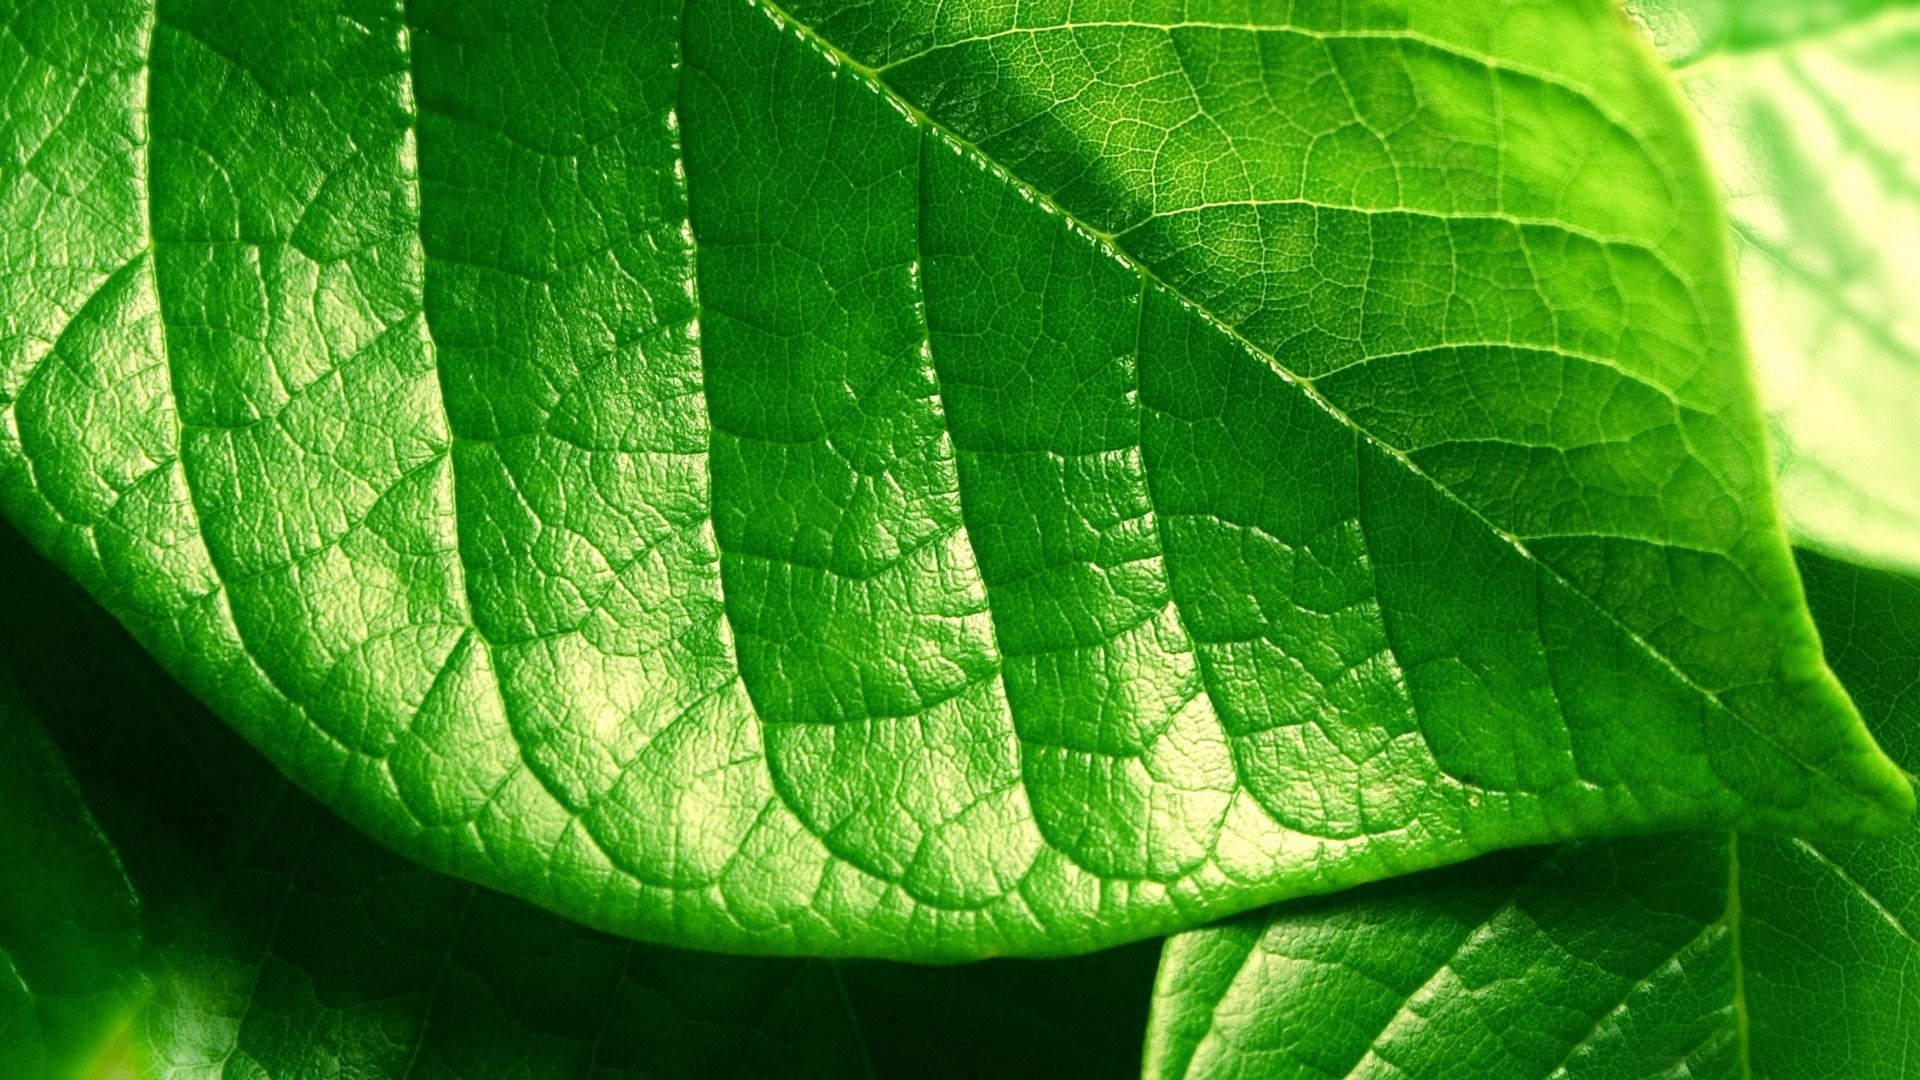 Green Leaf Wallpaper - WallpaperSafari